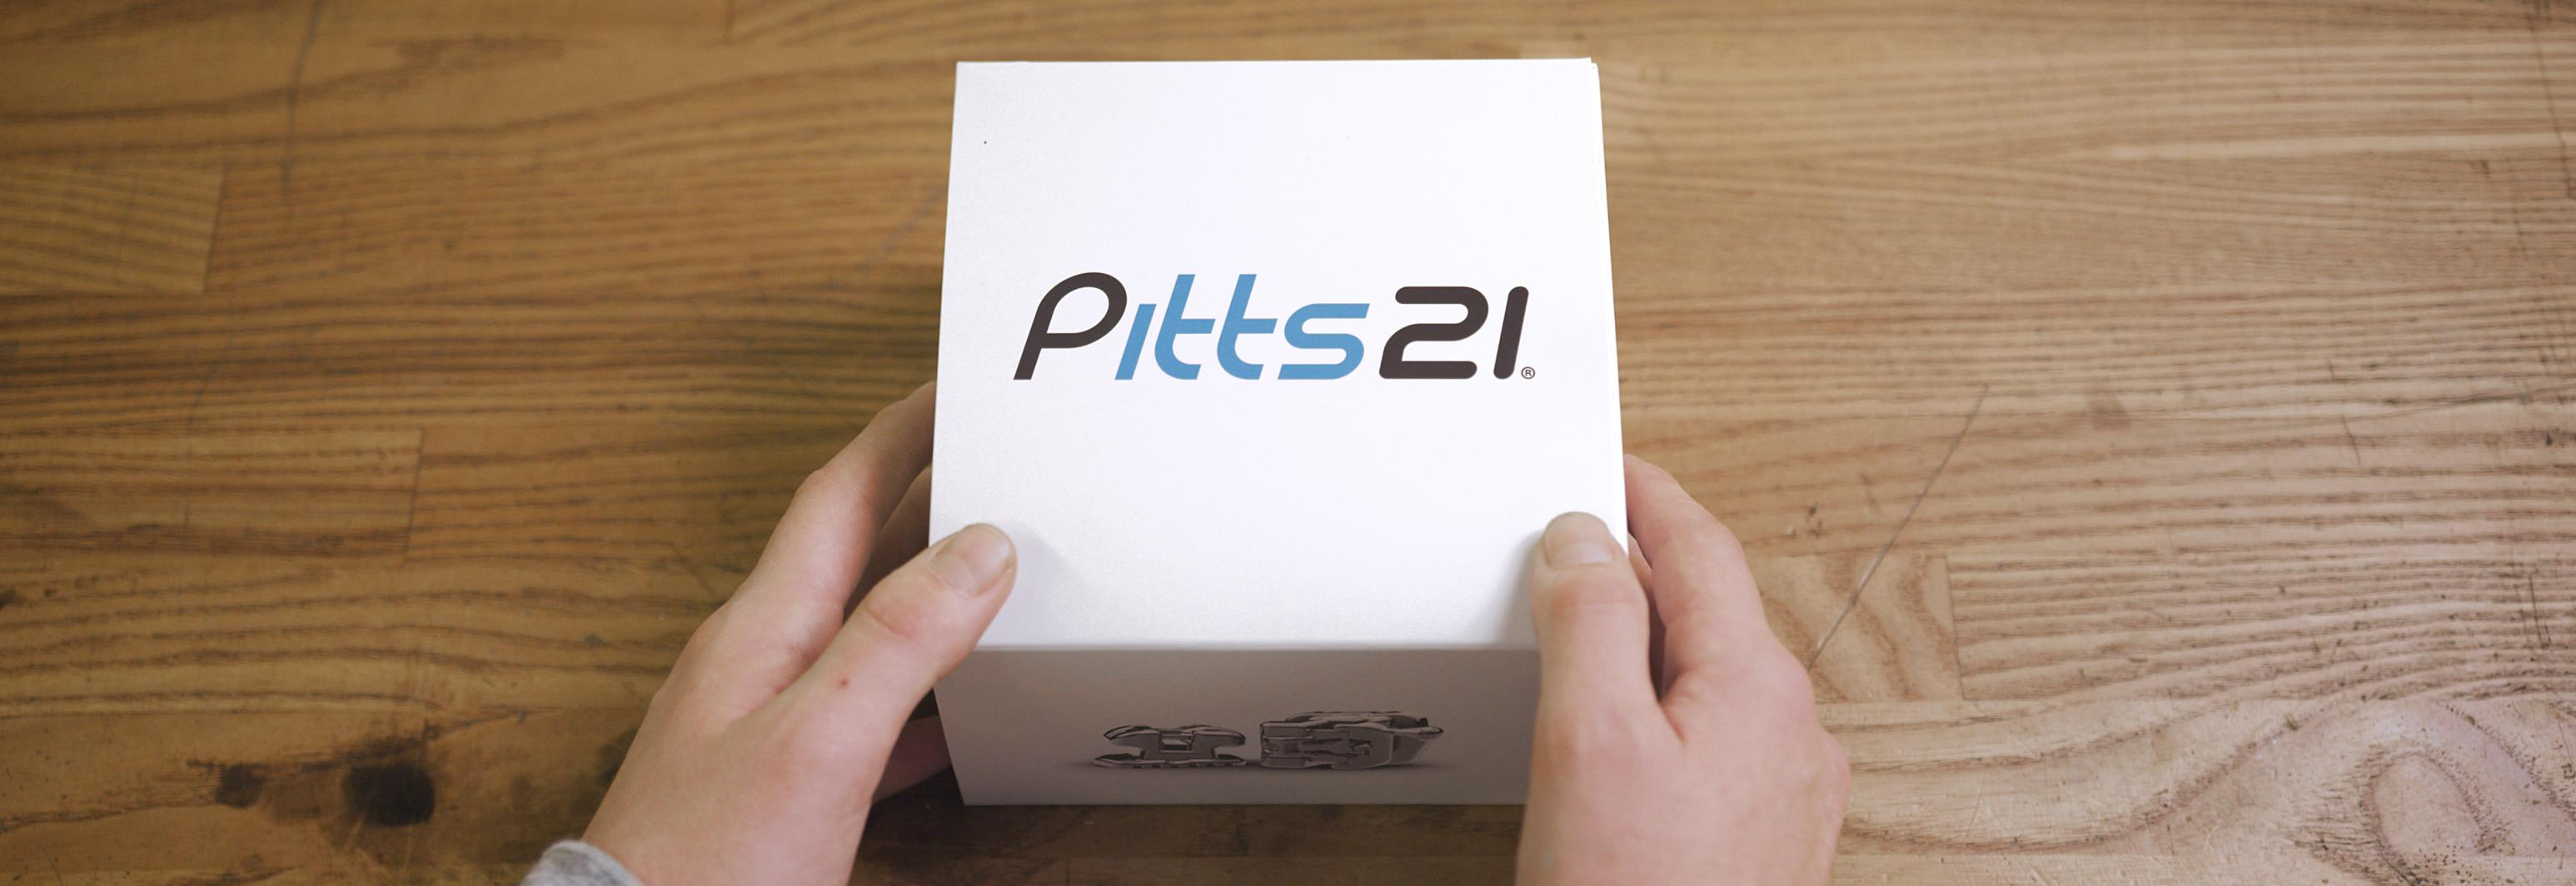 Pitts 21 Packaging